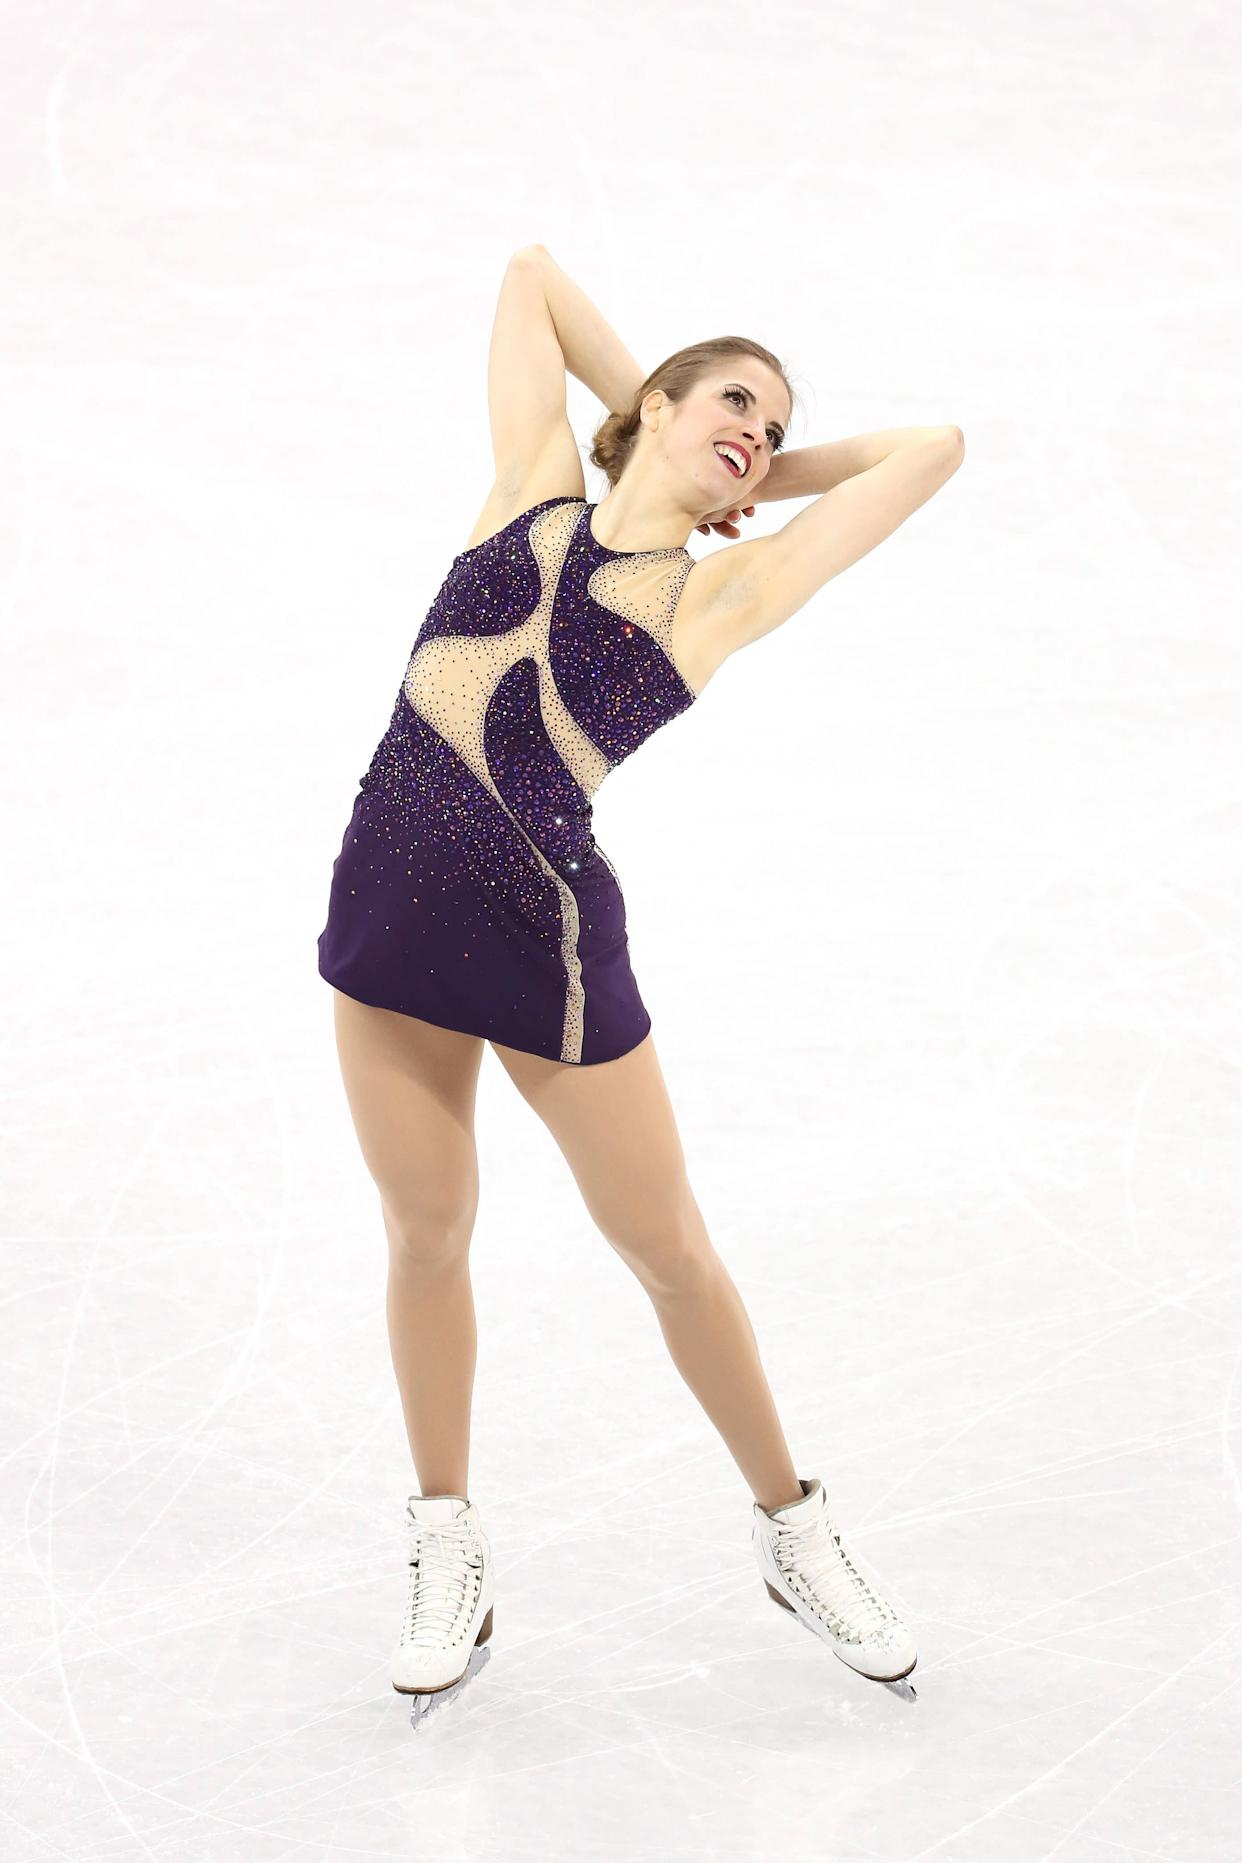 Kostner, of Italy, was one of the most stunning skaters to watch on the ice -- she is an Olympic vet, after all. She wore this funky cutout costume for her free skate during the ladies single event.